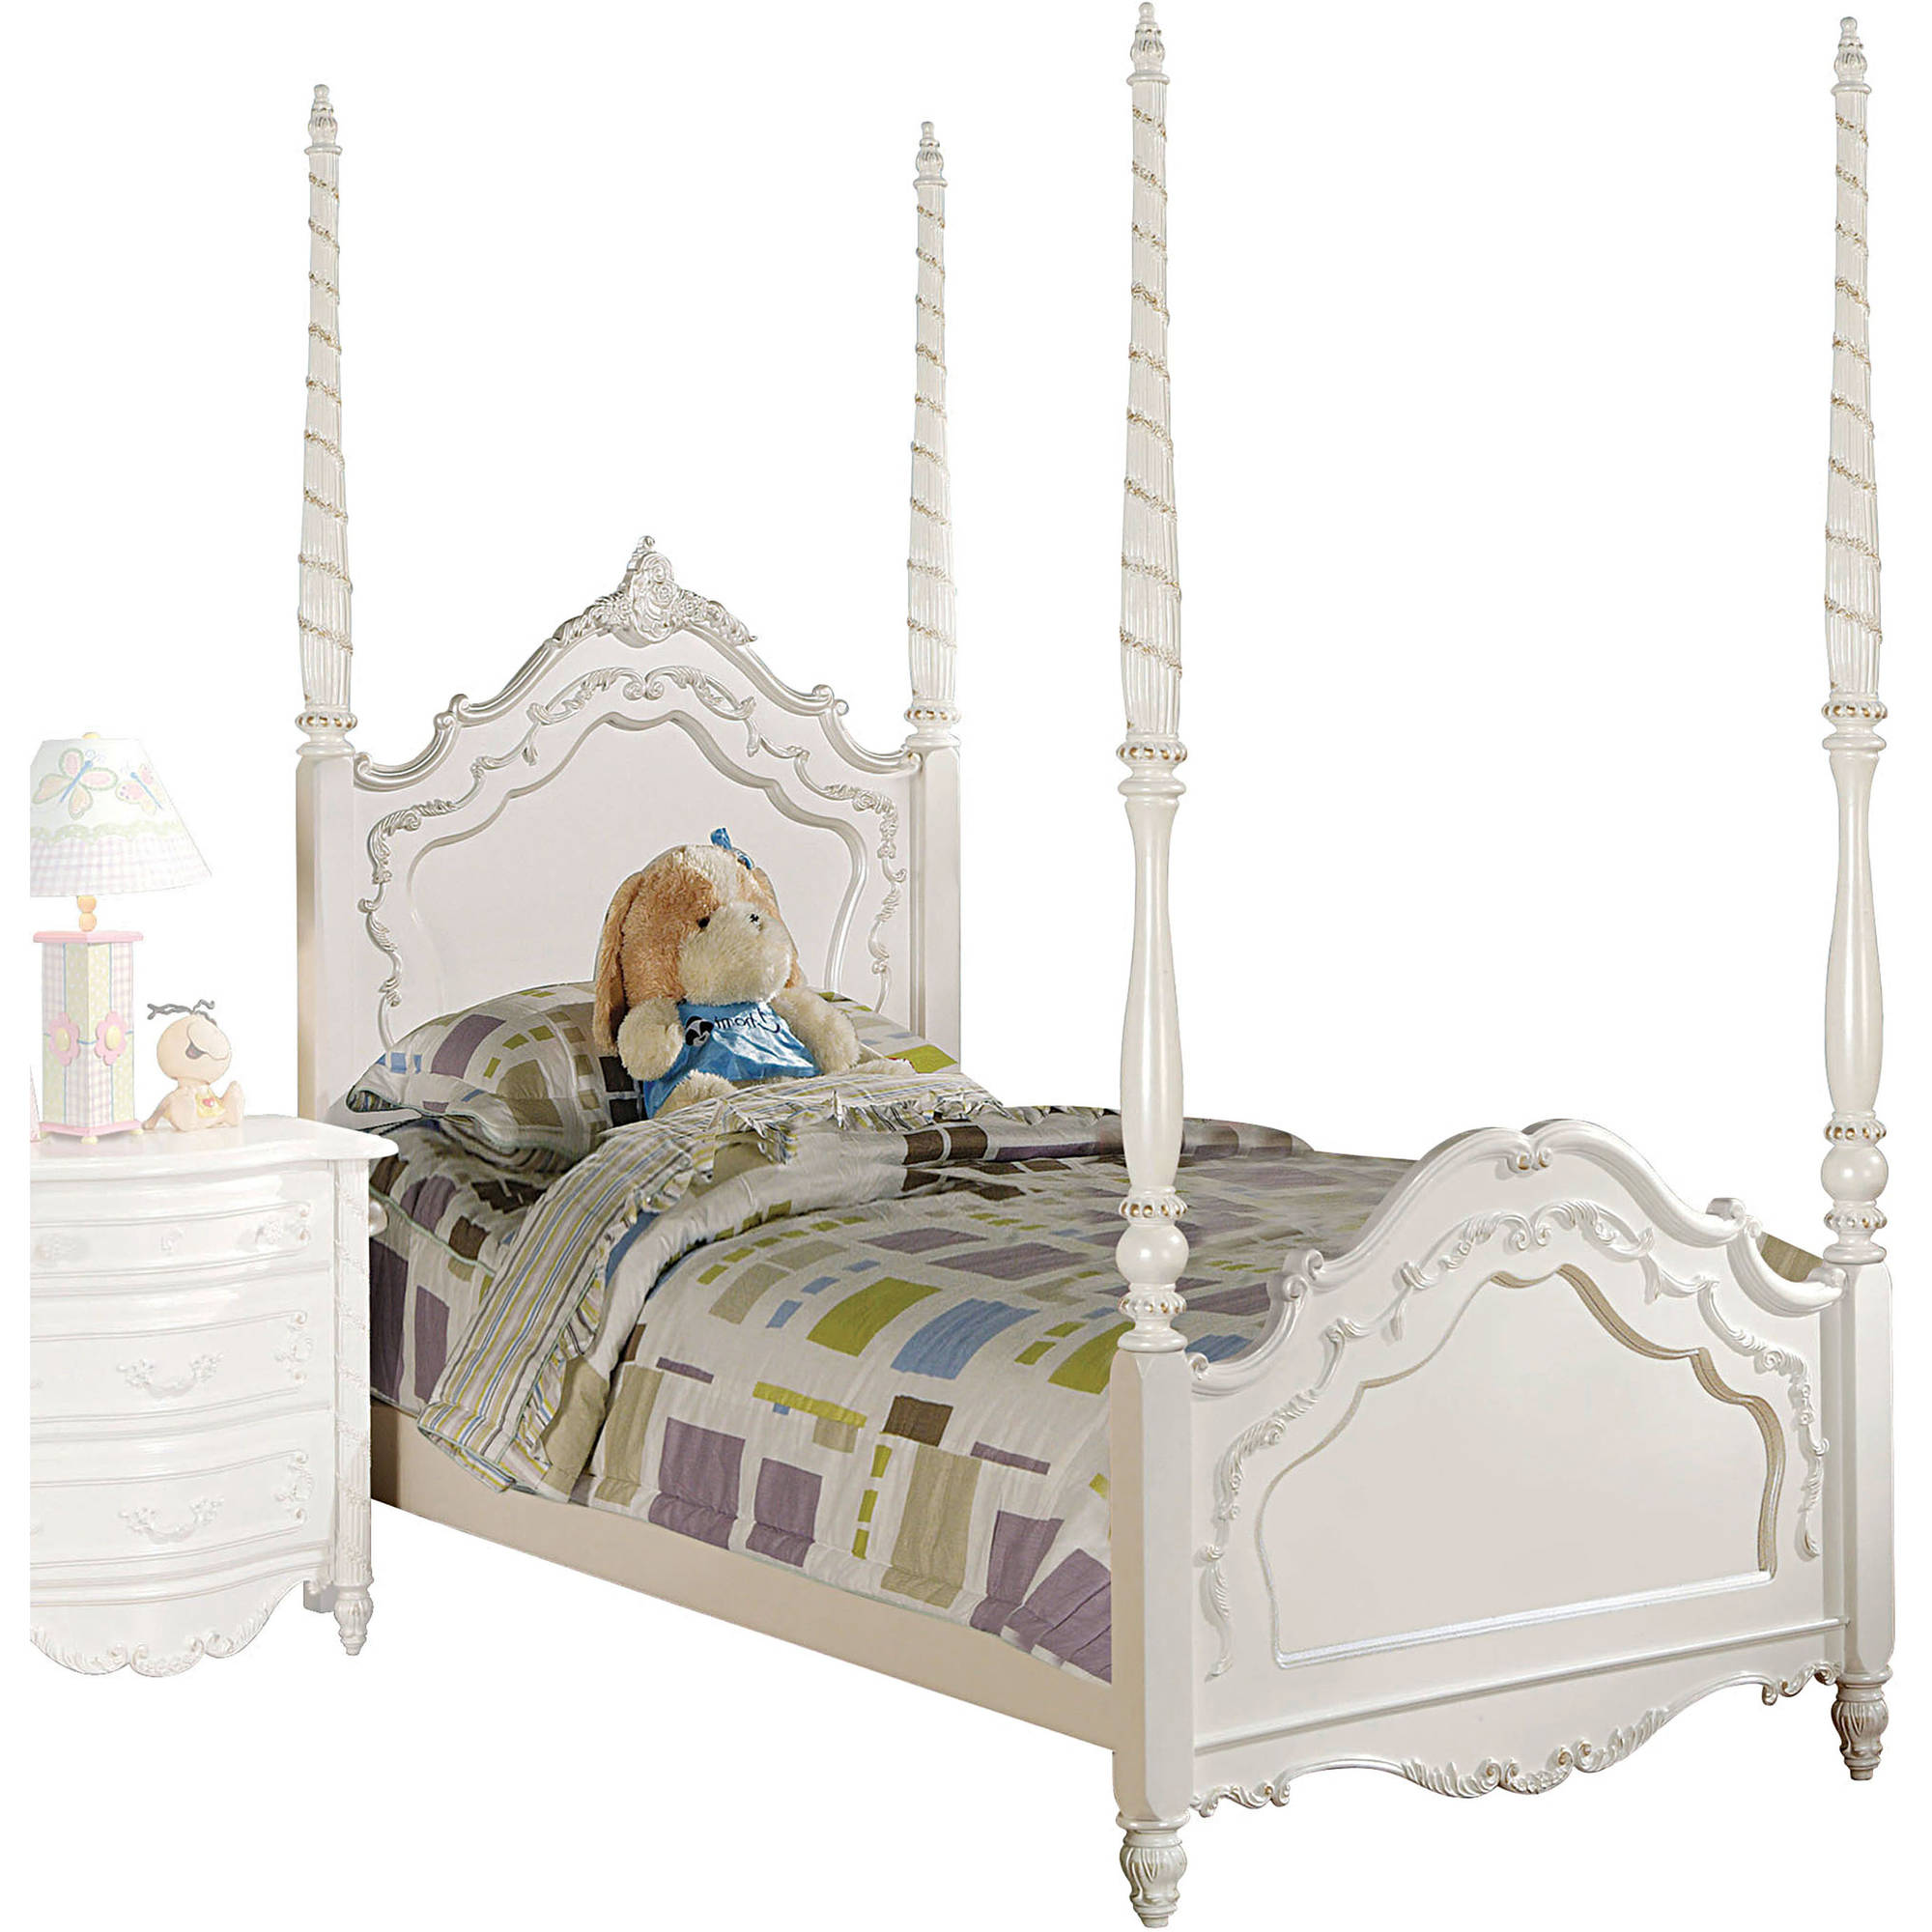 Acme Pearl Full Poster Bed, Pearl White and Gold Brush Accent, Box 1 of 3 by Acme Furniture